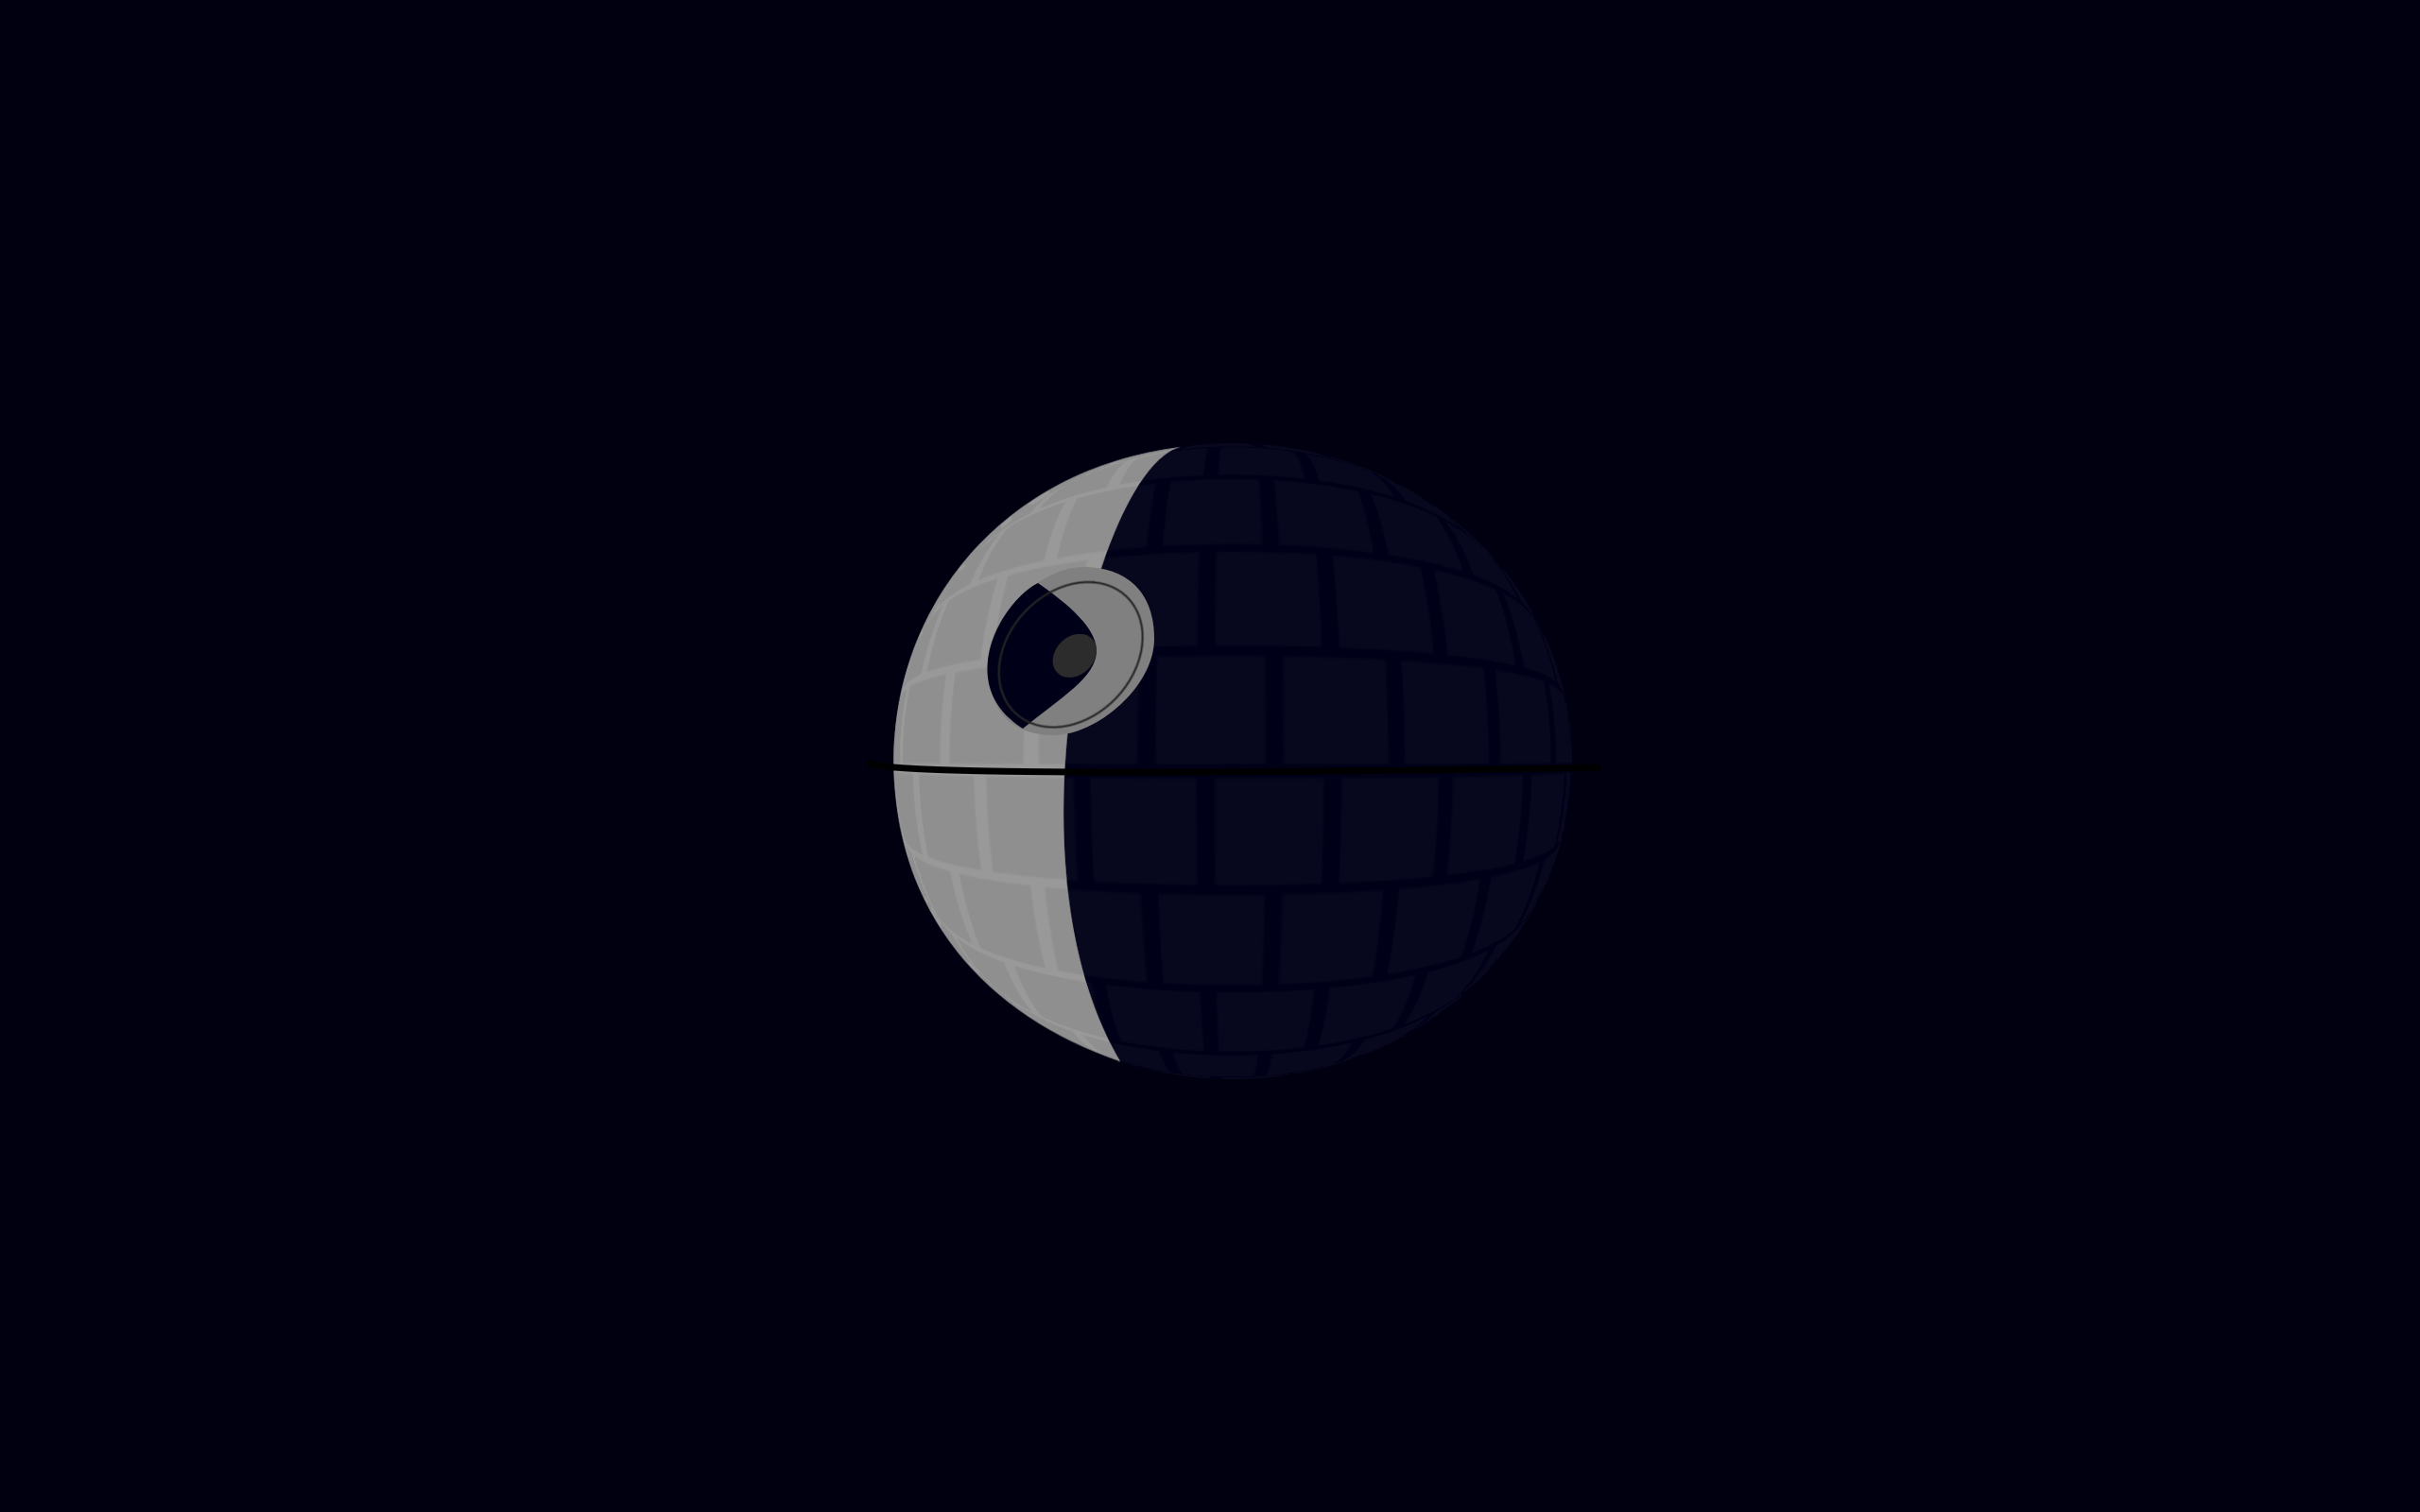 Death Star Awesome Wallpapers Png 2560 1600 Death Star Wallpaper Star Wallpaper Star Wars Wallpaper